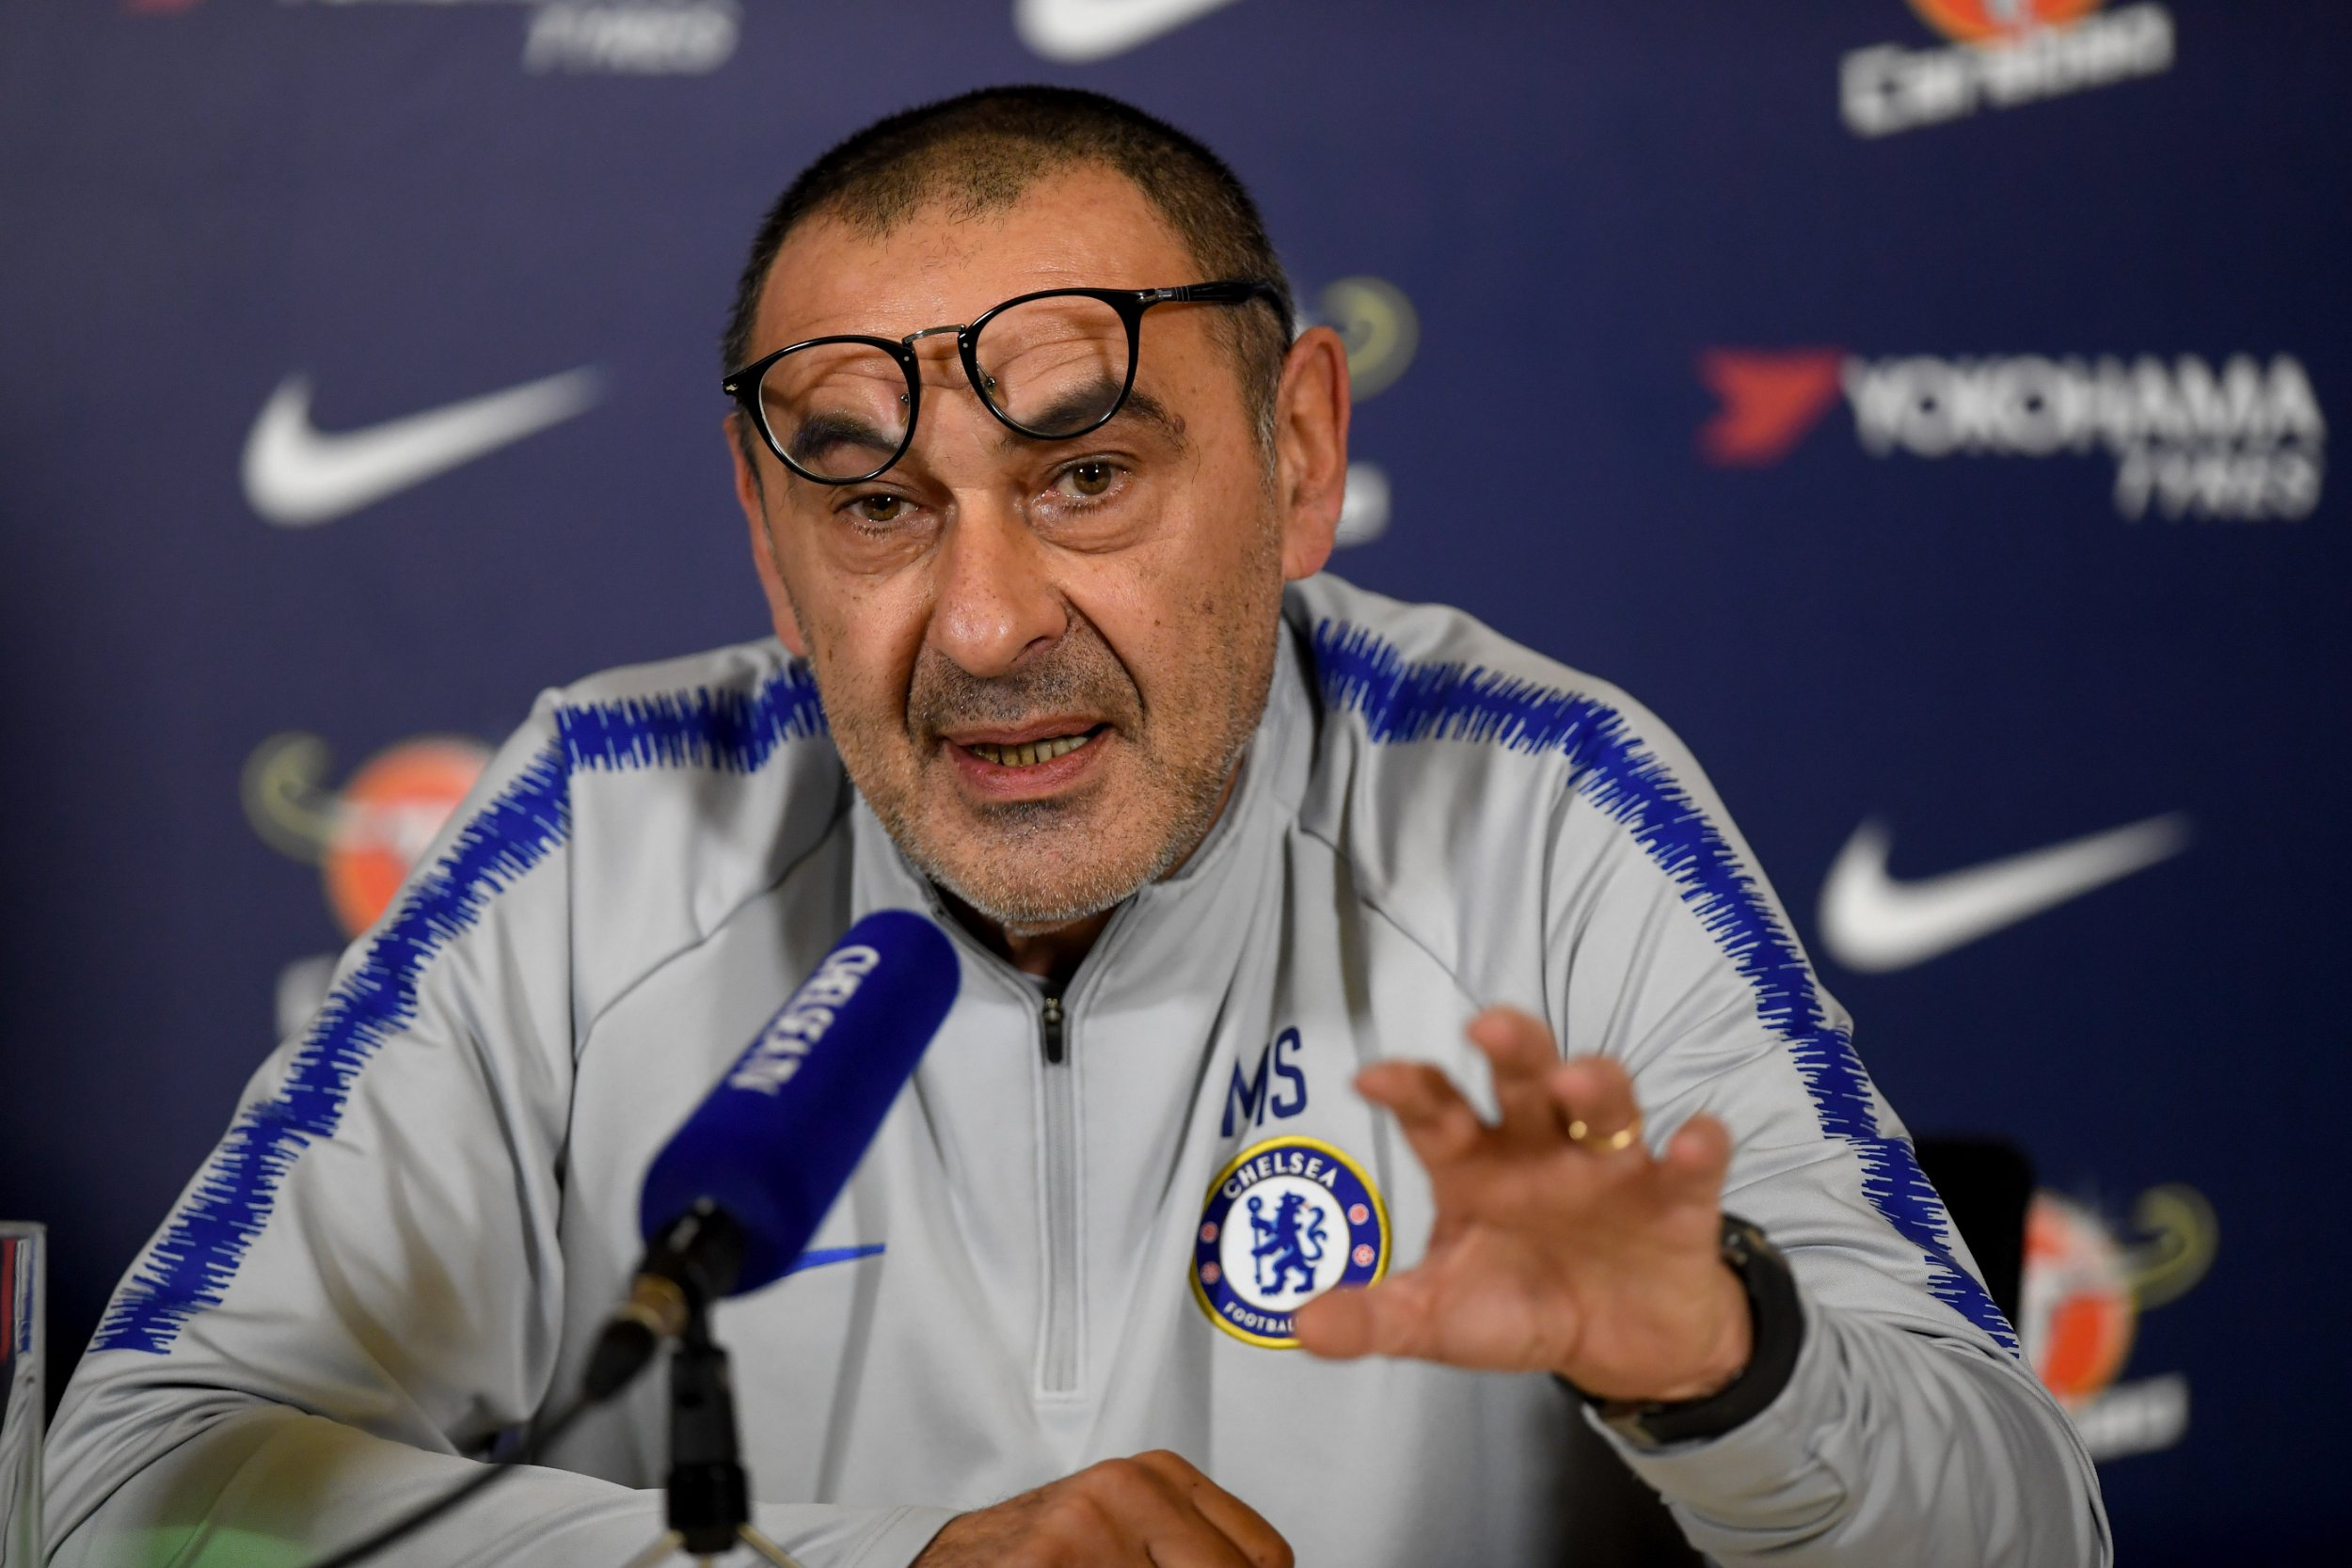 Maurizio Sarri reveals how Chelsea players reacted to his criticism after Arsenal defeat